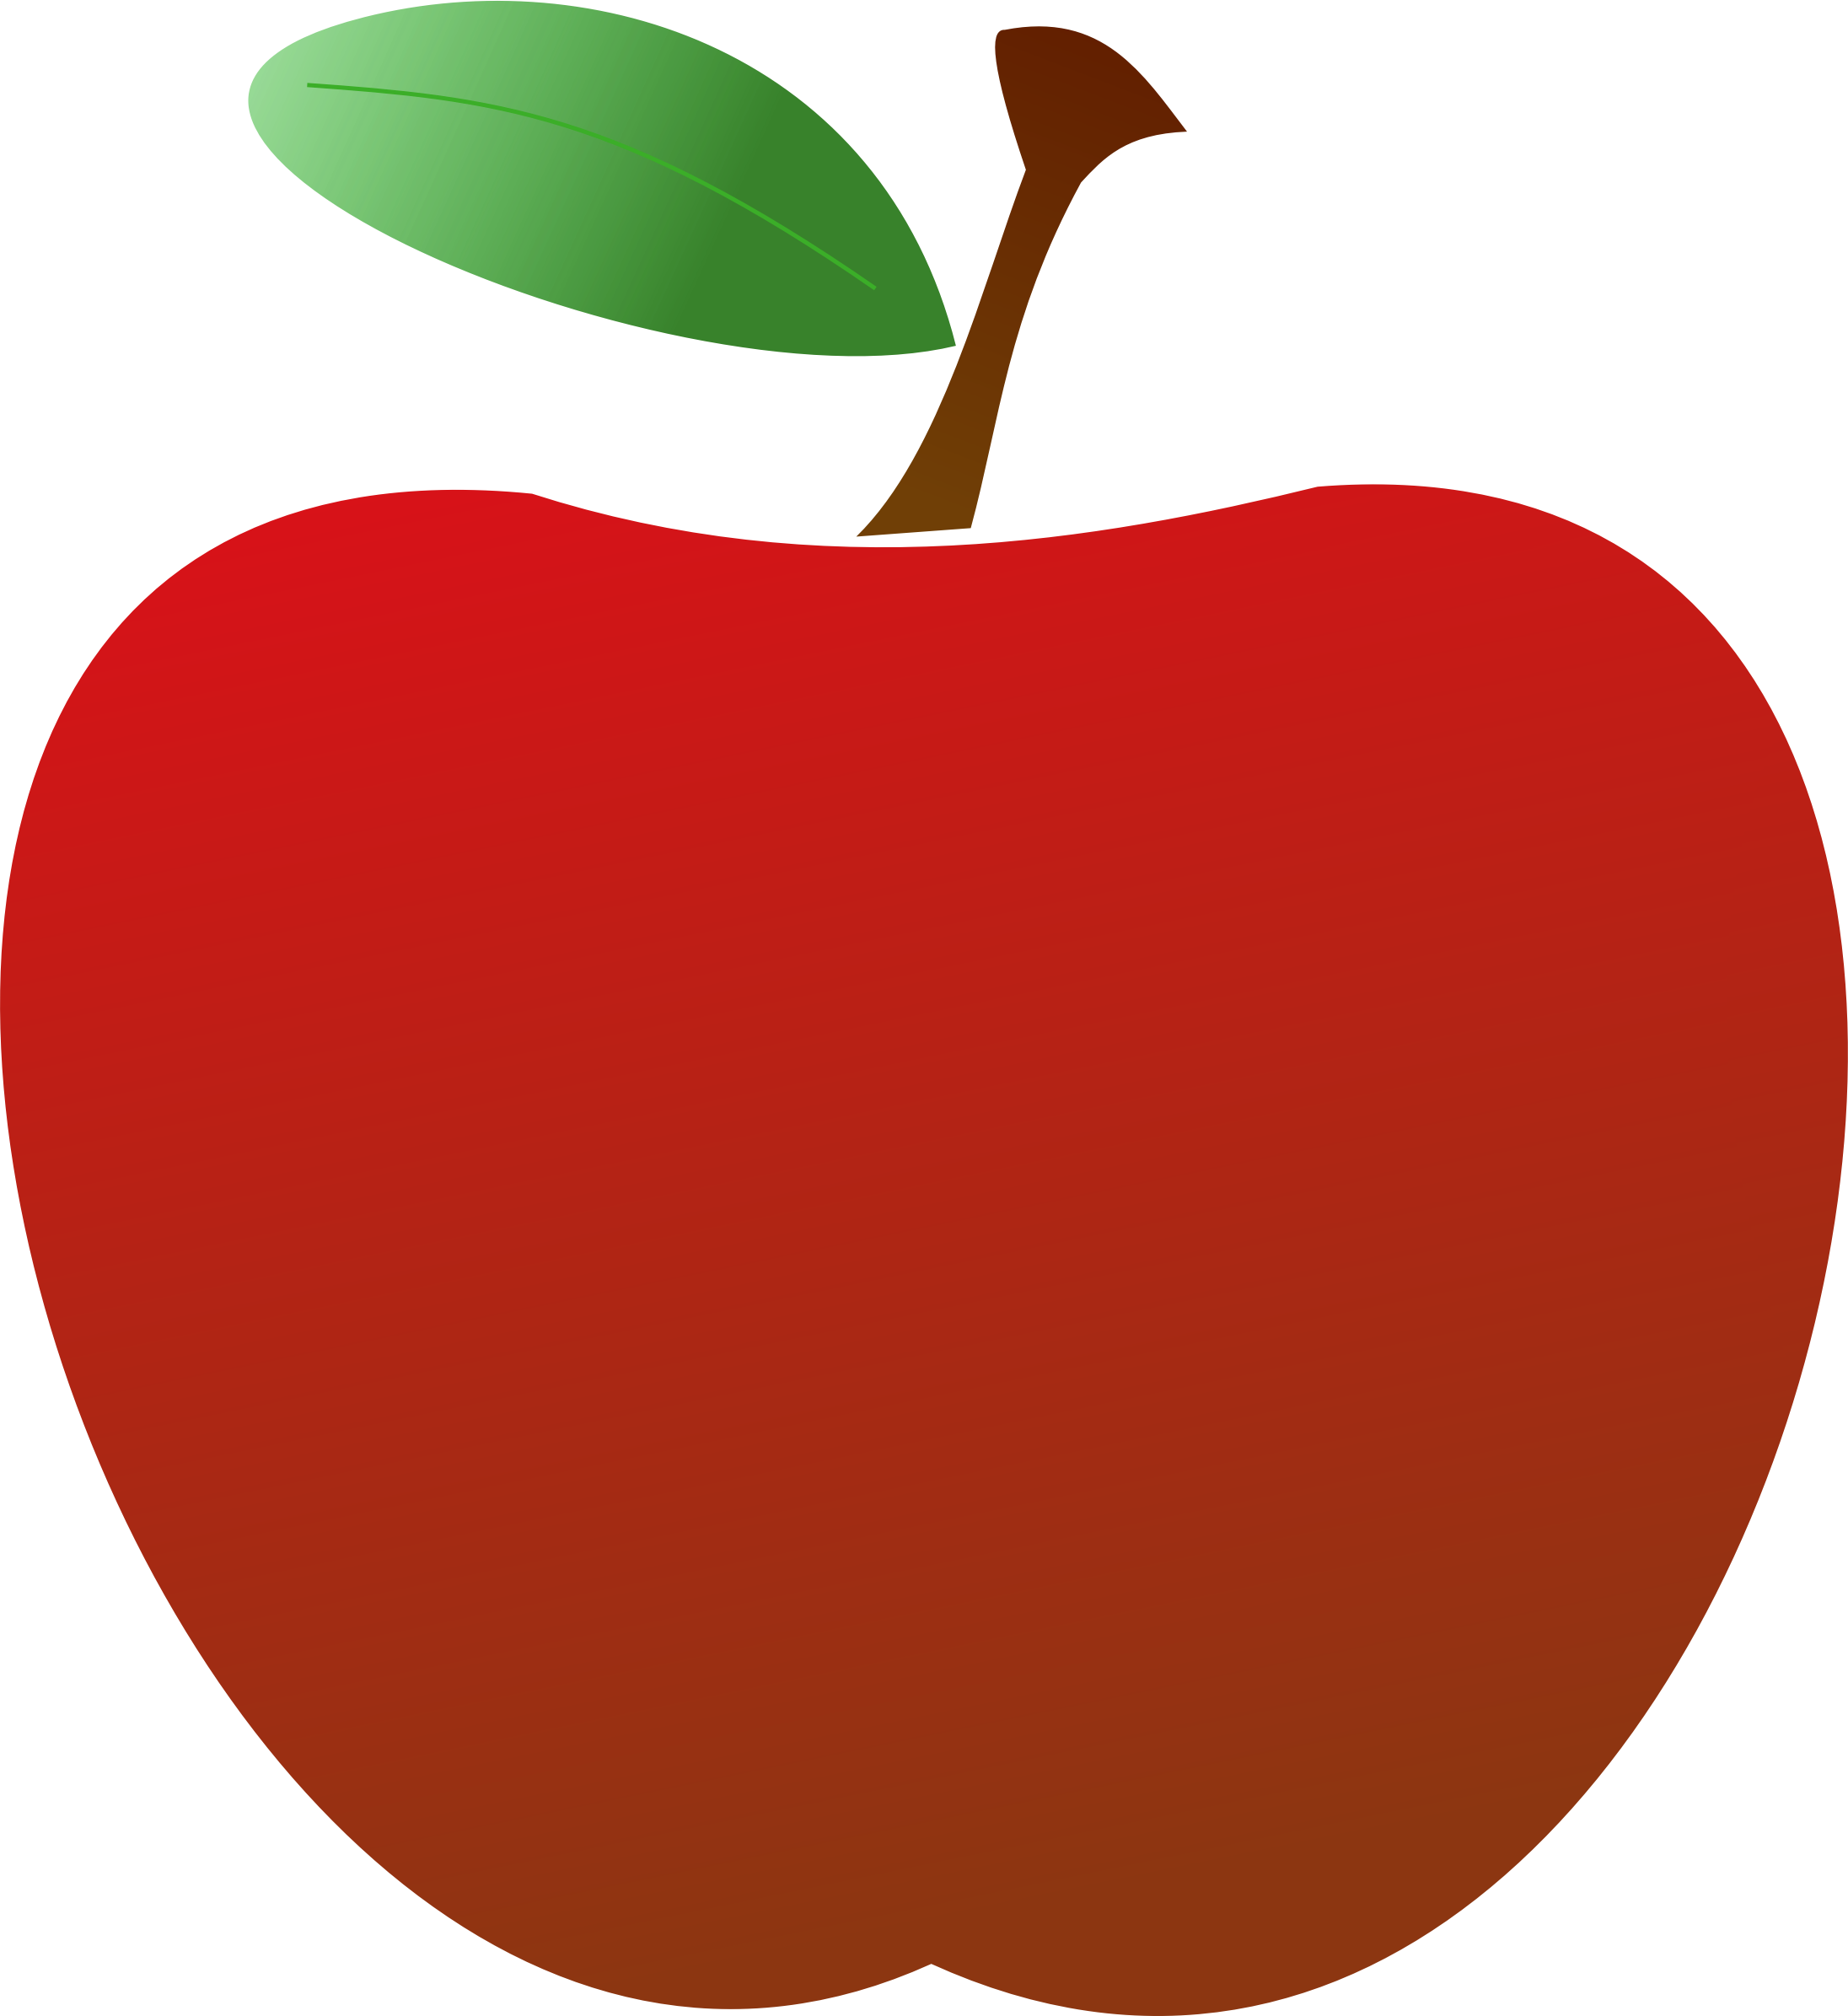 Apple clipart border picture library download Clipart Apple Leaf - gucciguanfangwang.me picture library download